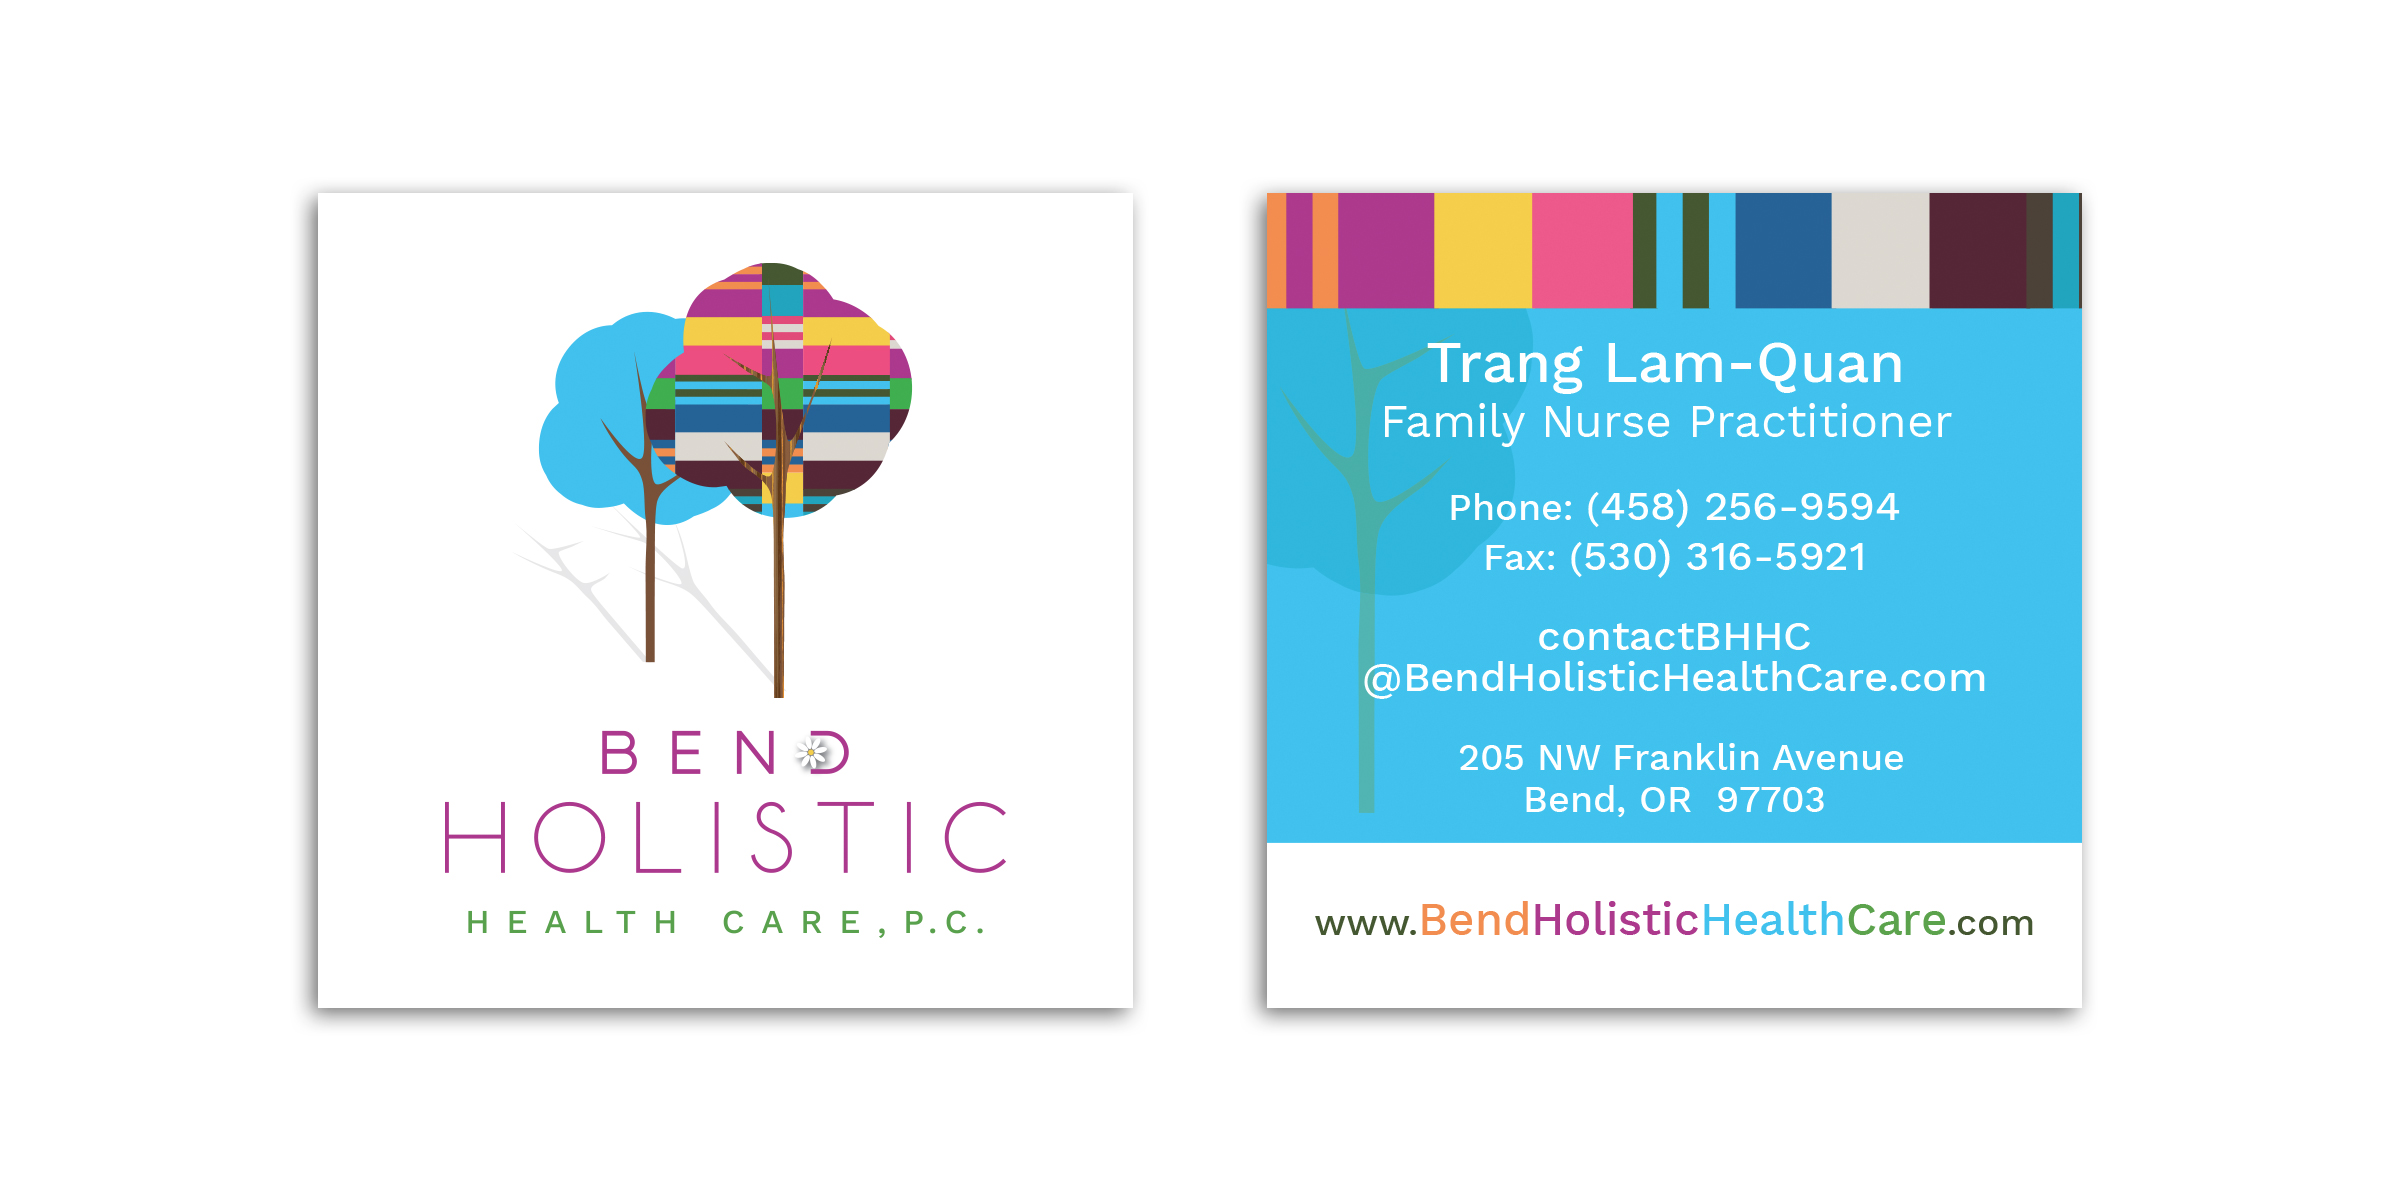 Bend-Holistic-Health-Care-business-cards